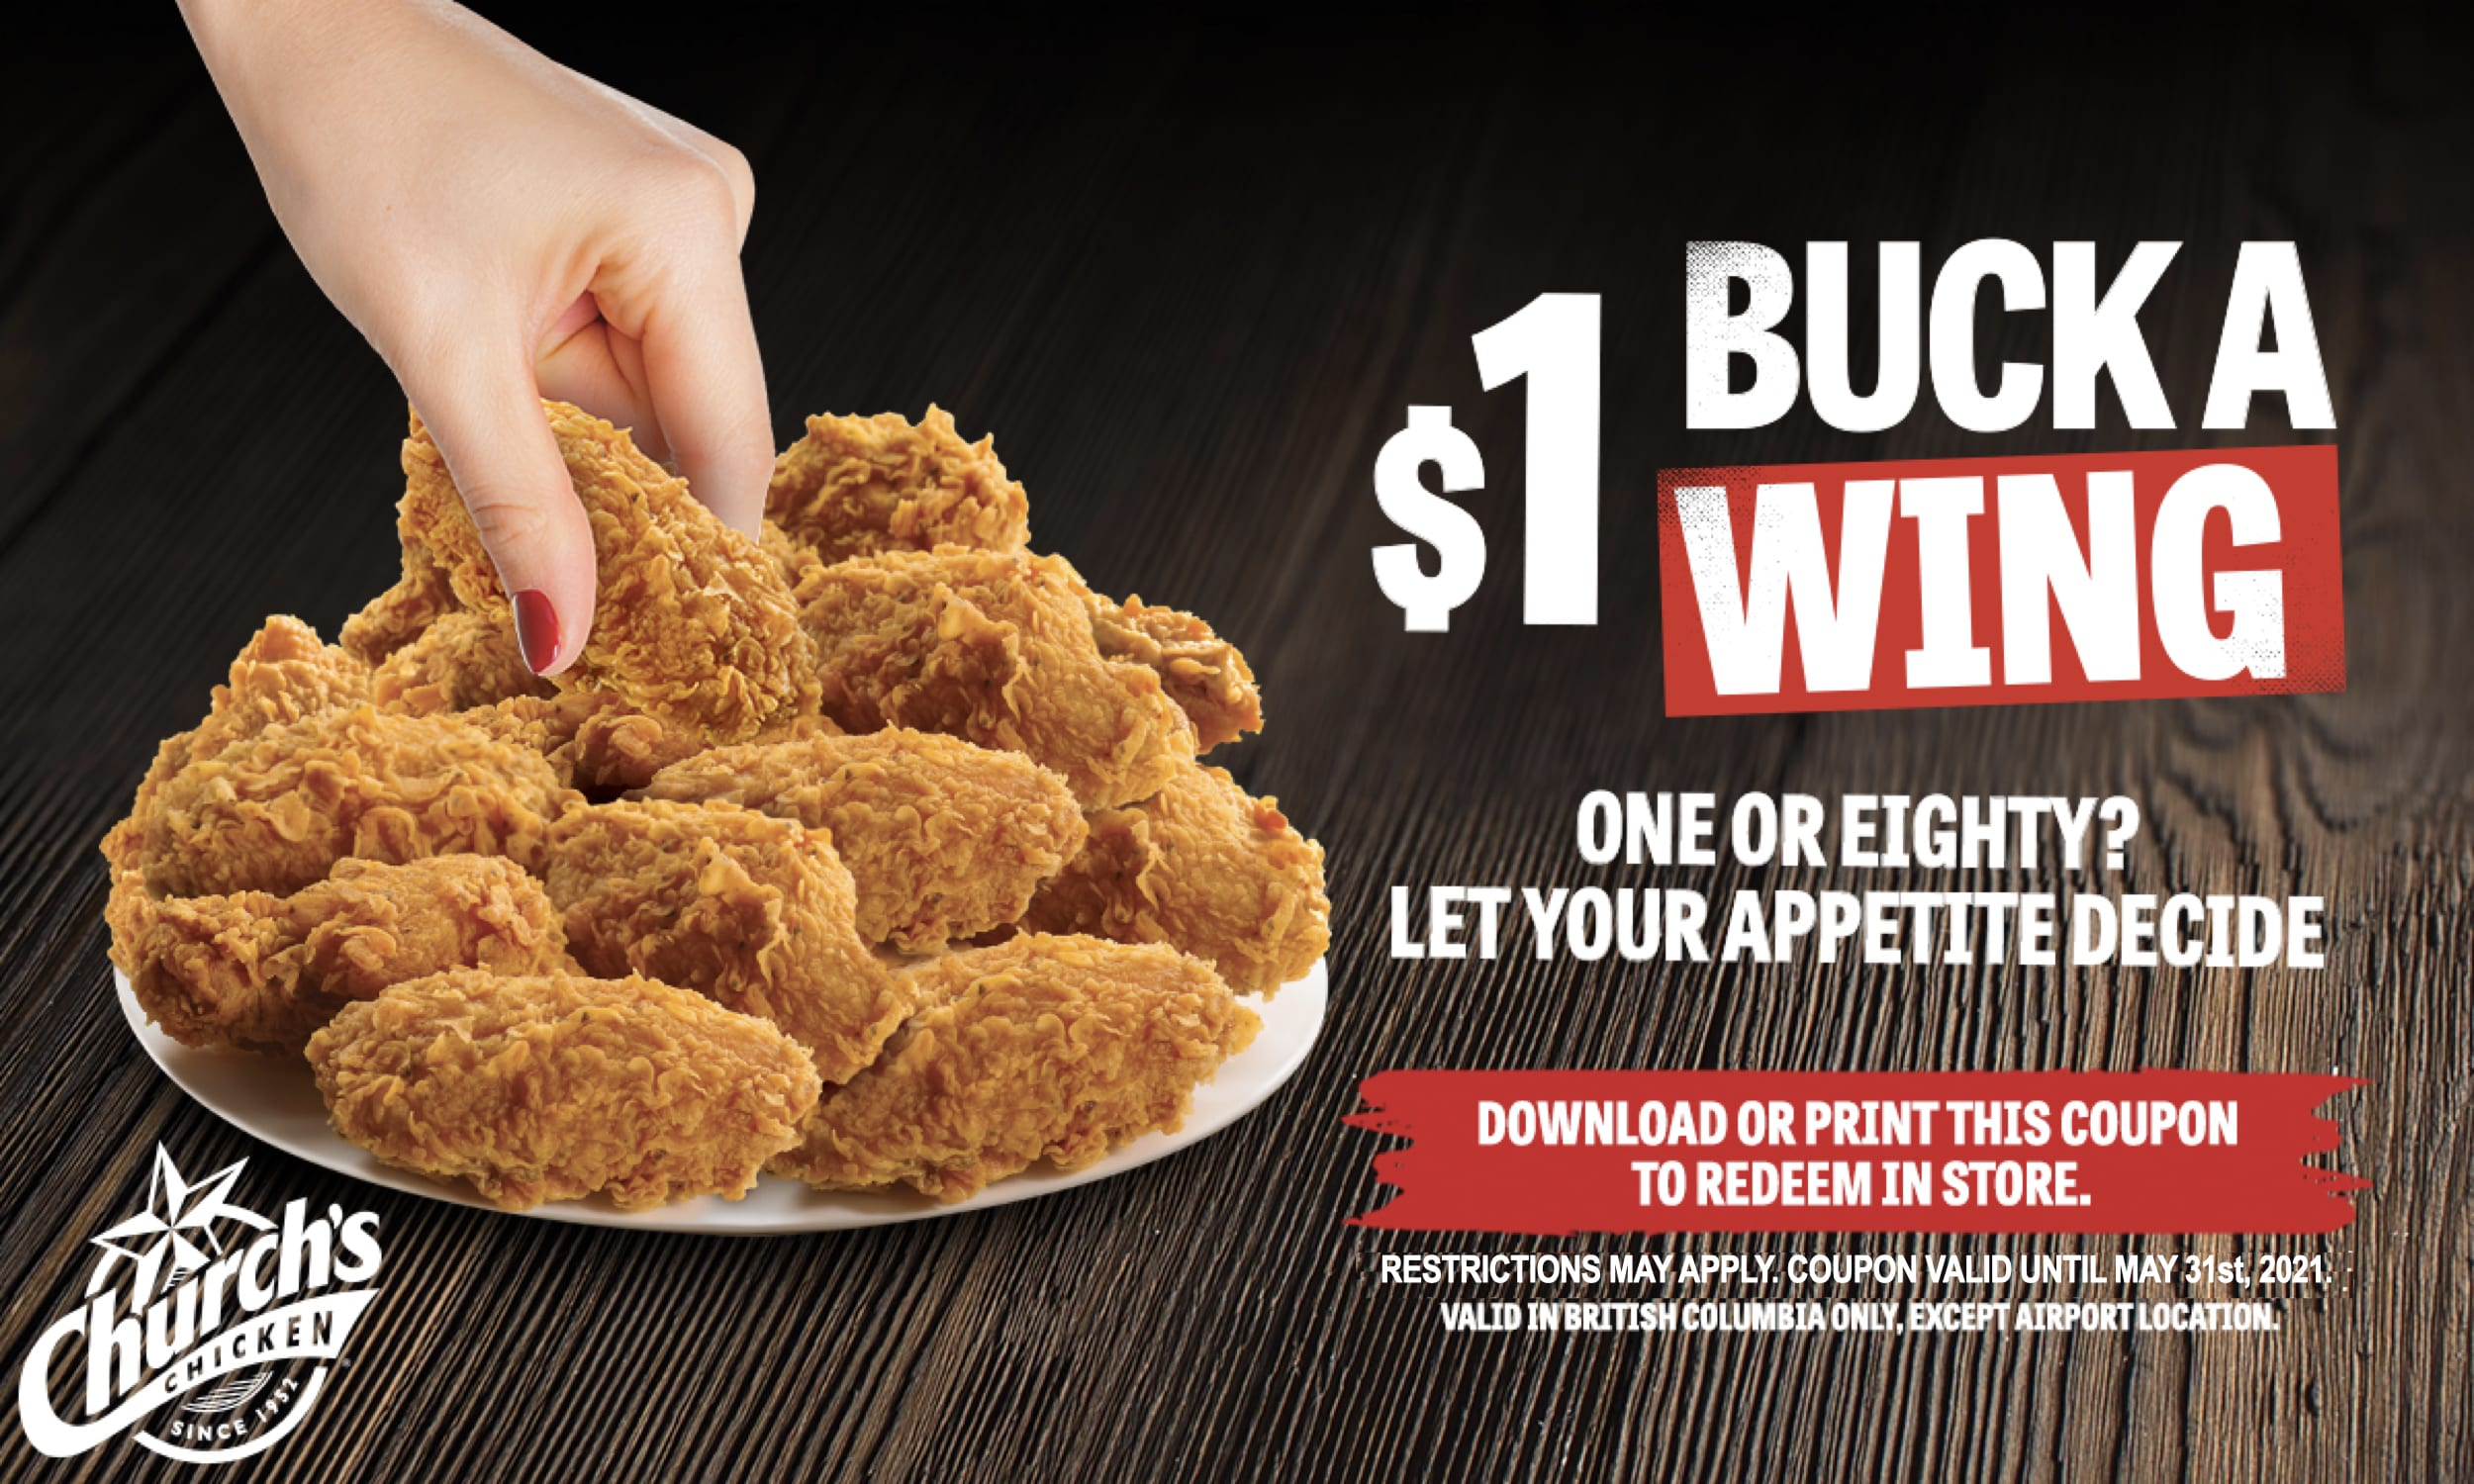 $1 A WING MAY